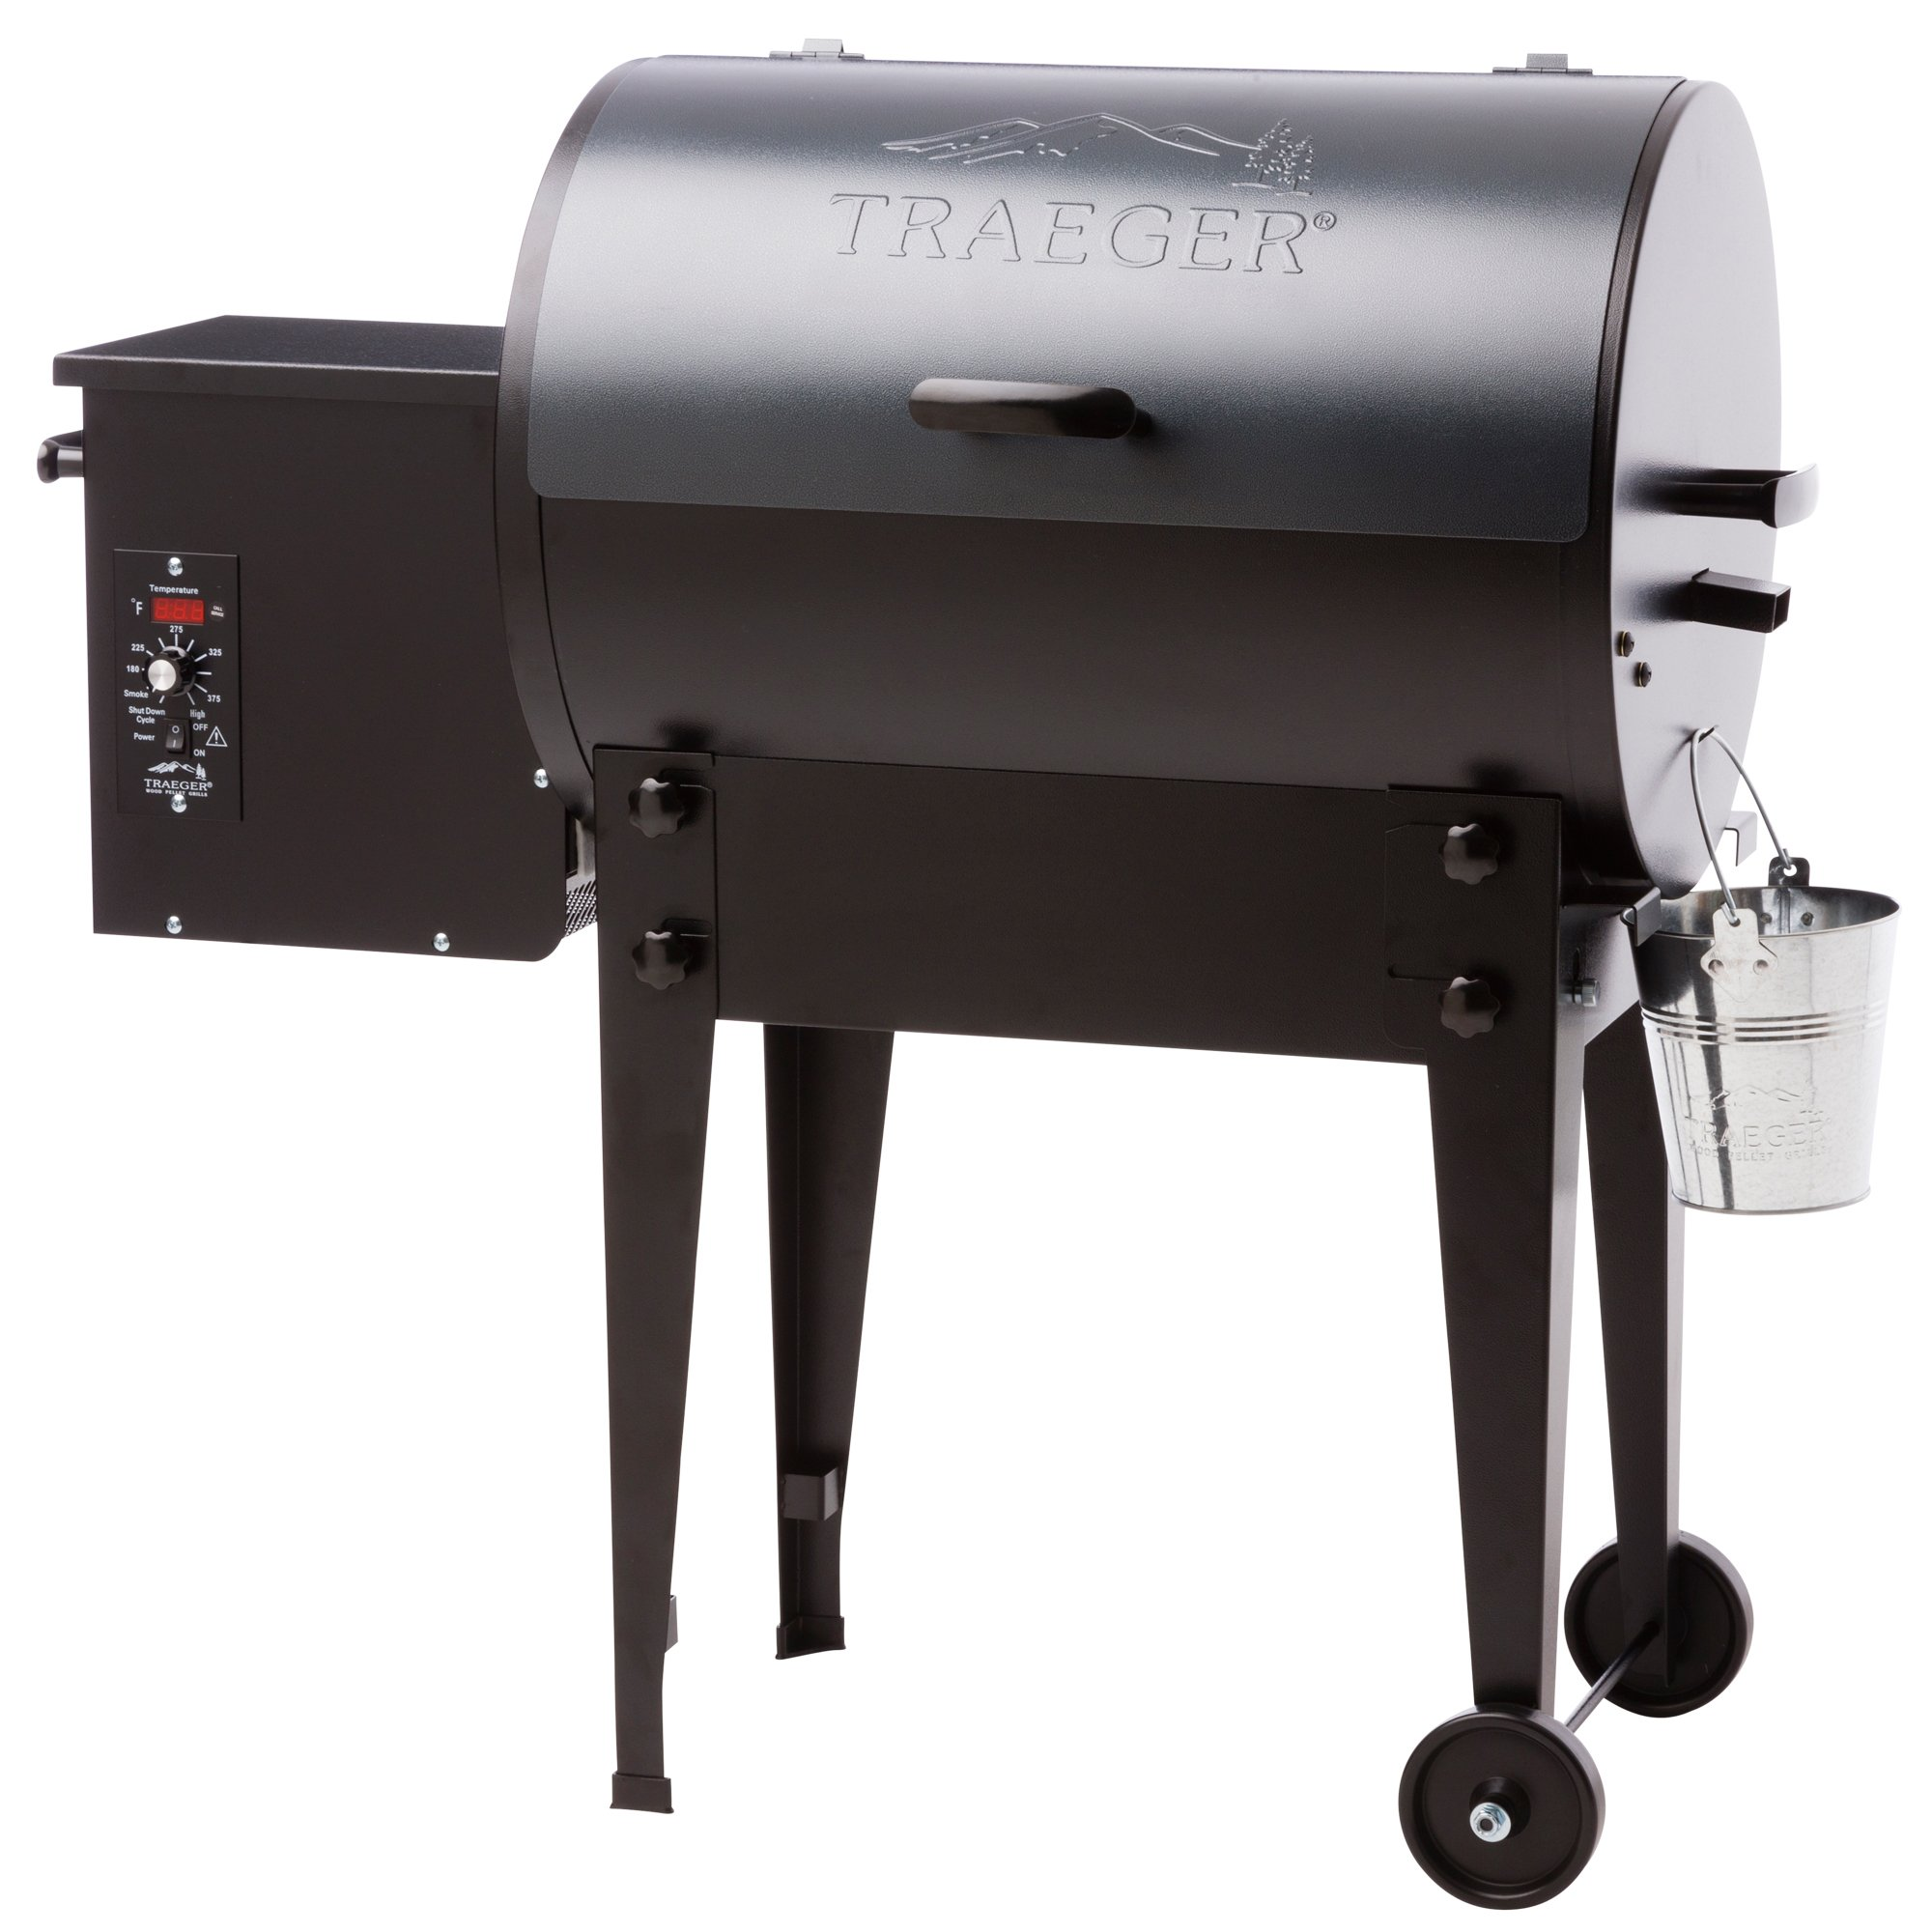 Traeger Grills Tailgater 20 Portable Wood Pellet Grill and Smoker - Grill, Smoke, Bake, Roast, Braise, and BBQ (Blue) by Traeger (Image #1)